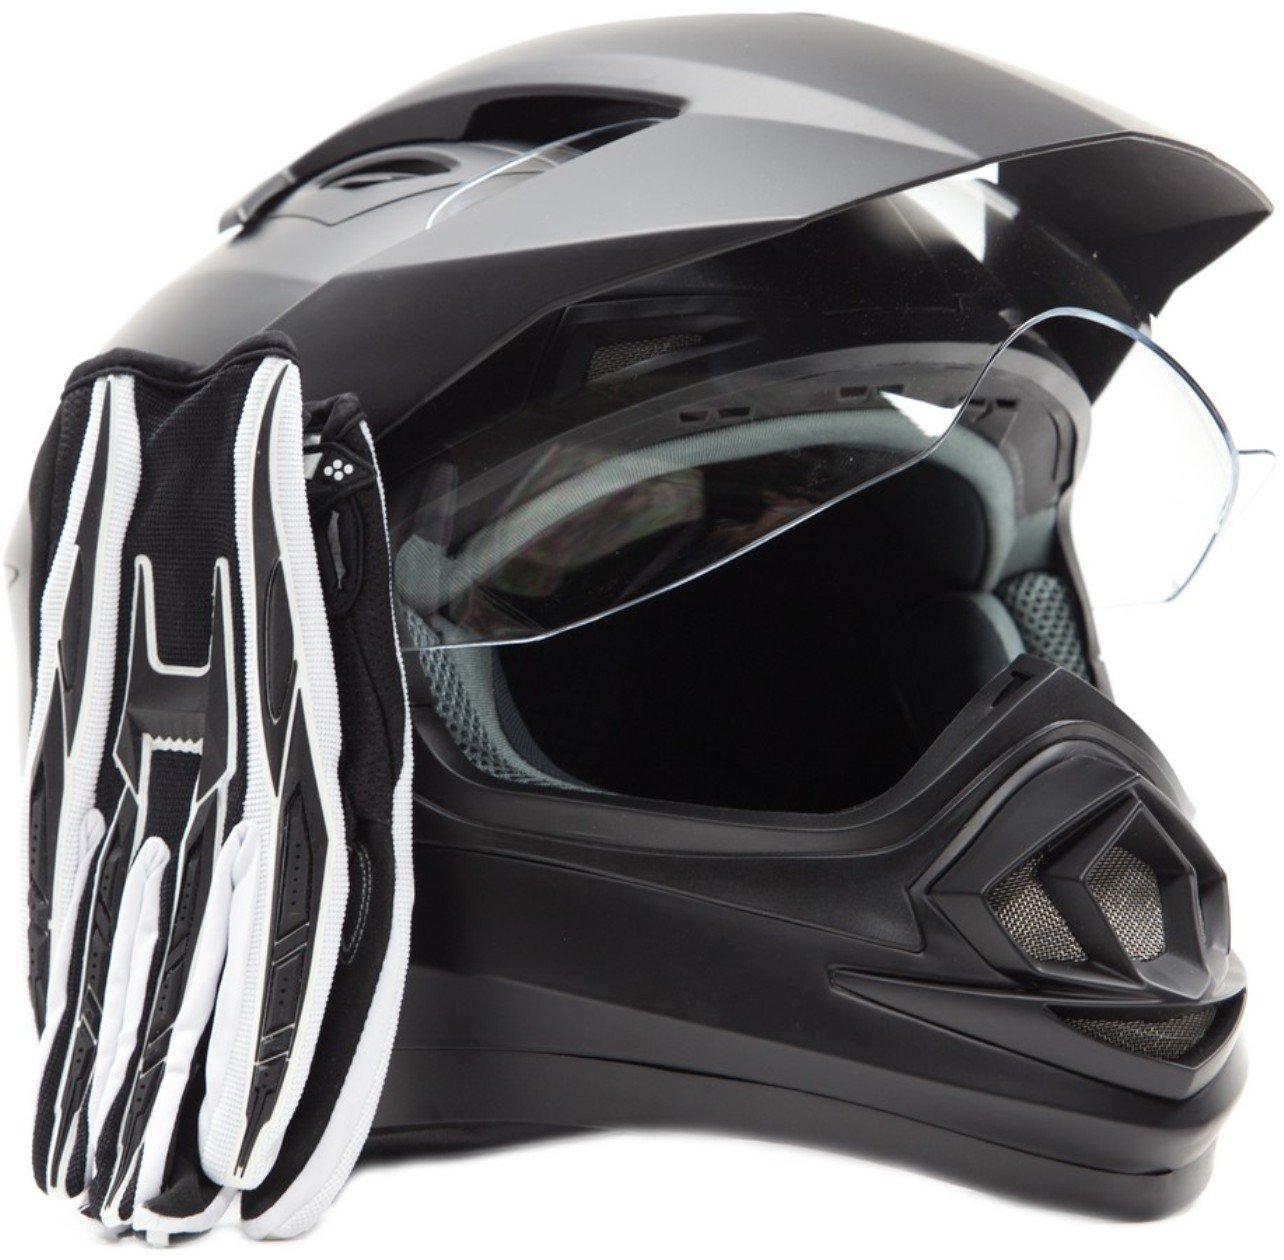 Dual Sport Helmet Combo w/Gloves - Off Road Motocross UTV ATV Motorcycle Enduro - Matte Black, Black - XXL